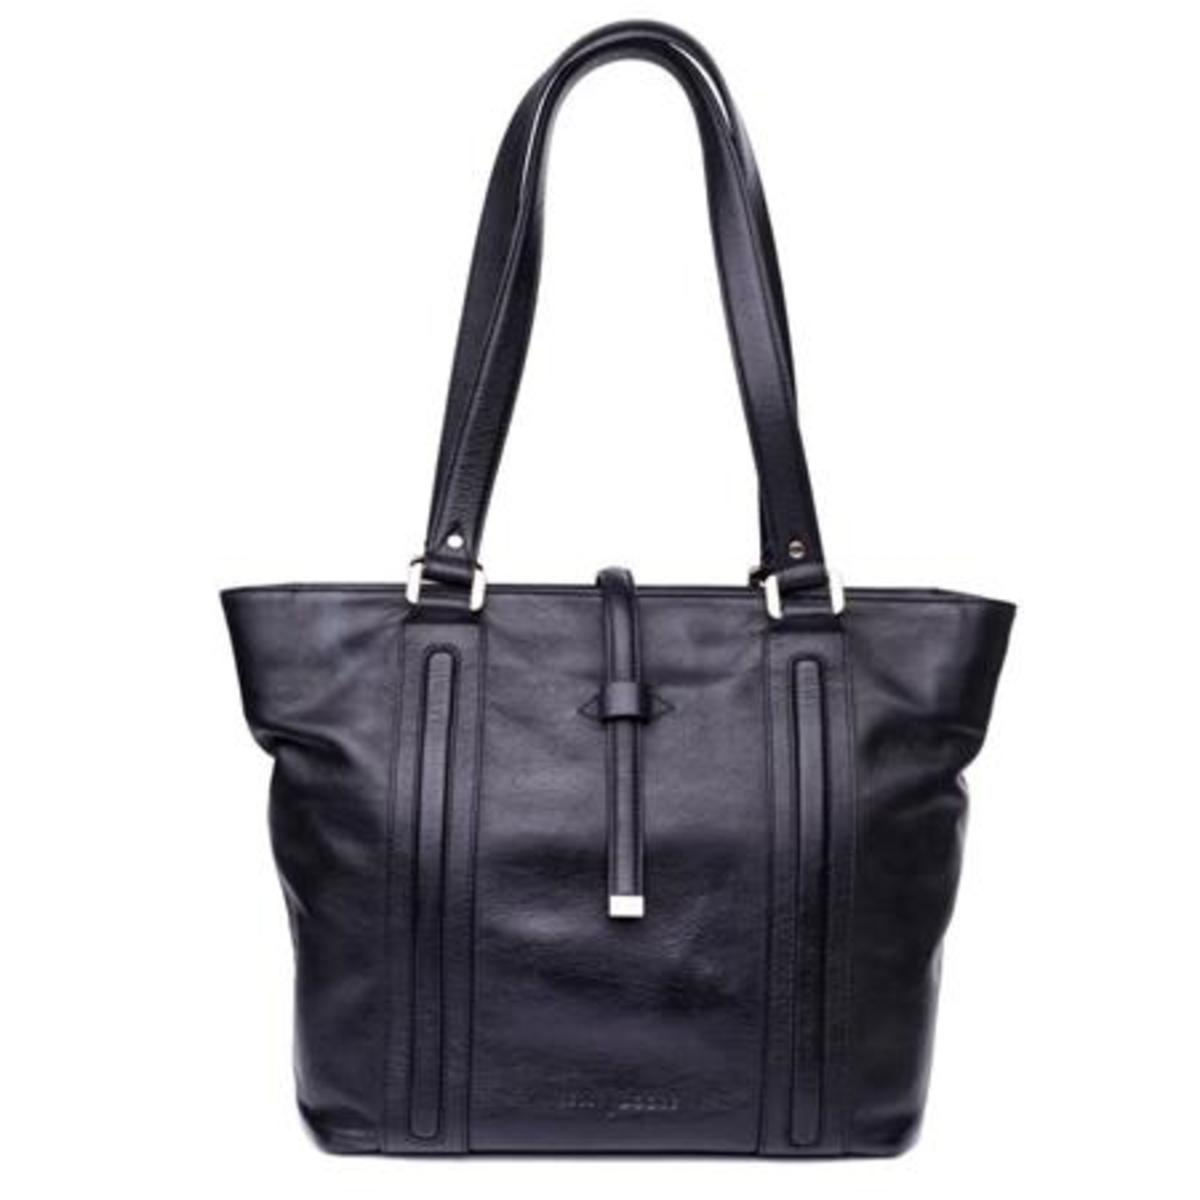 Made of Nappa leather